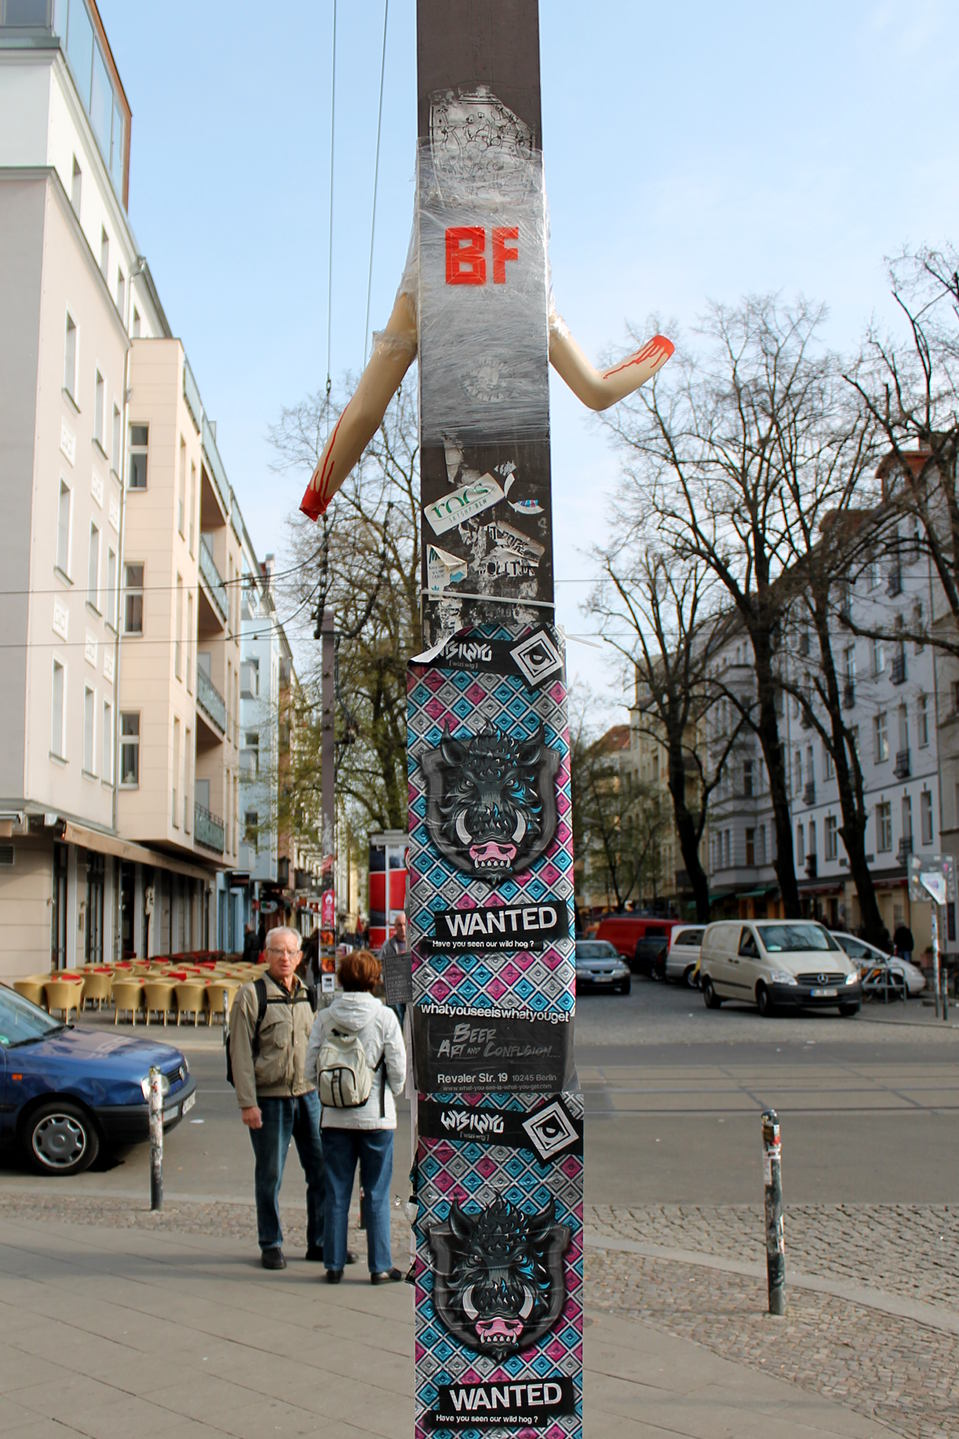 Arms Instalation by Berlin based Street Art Team Bosso Fataka